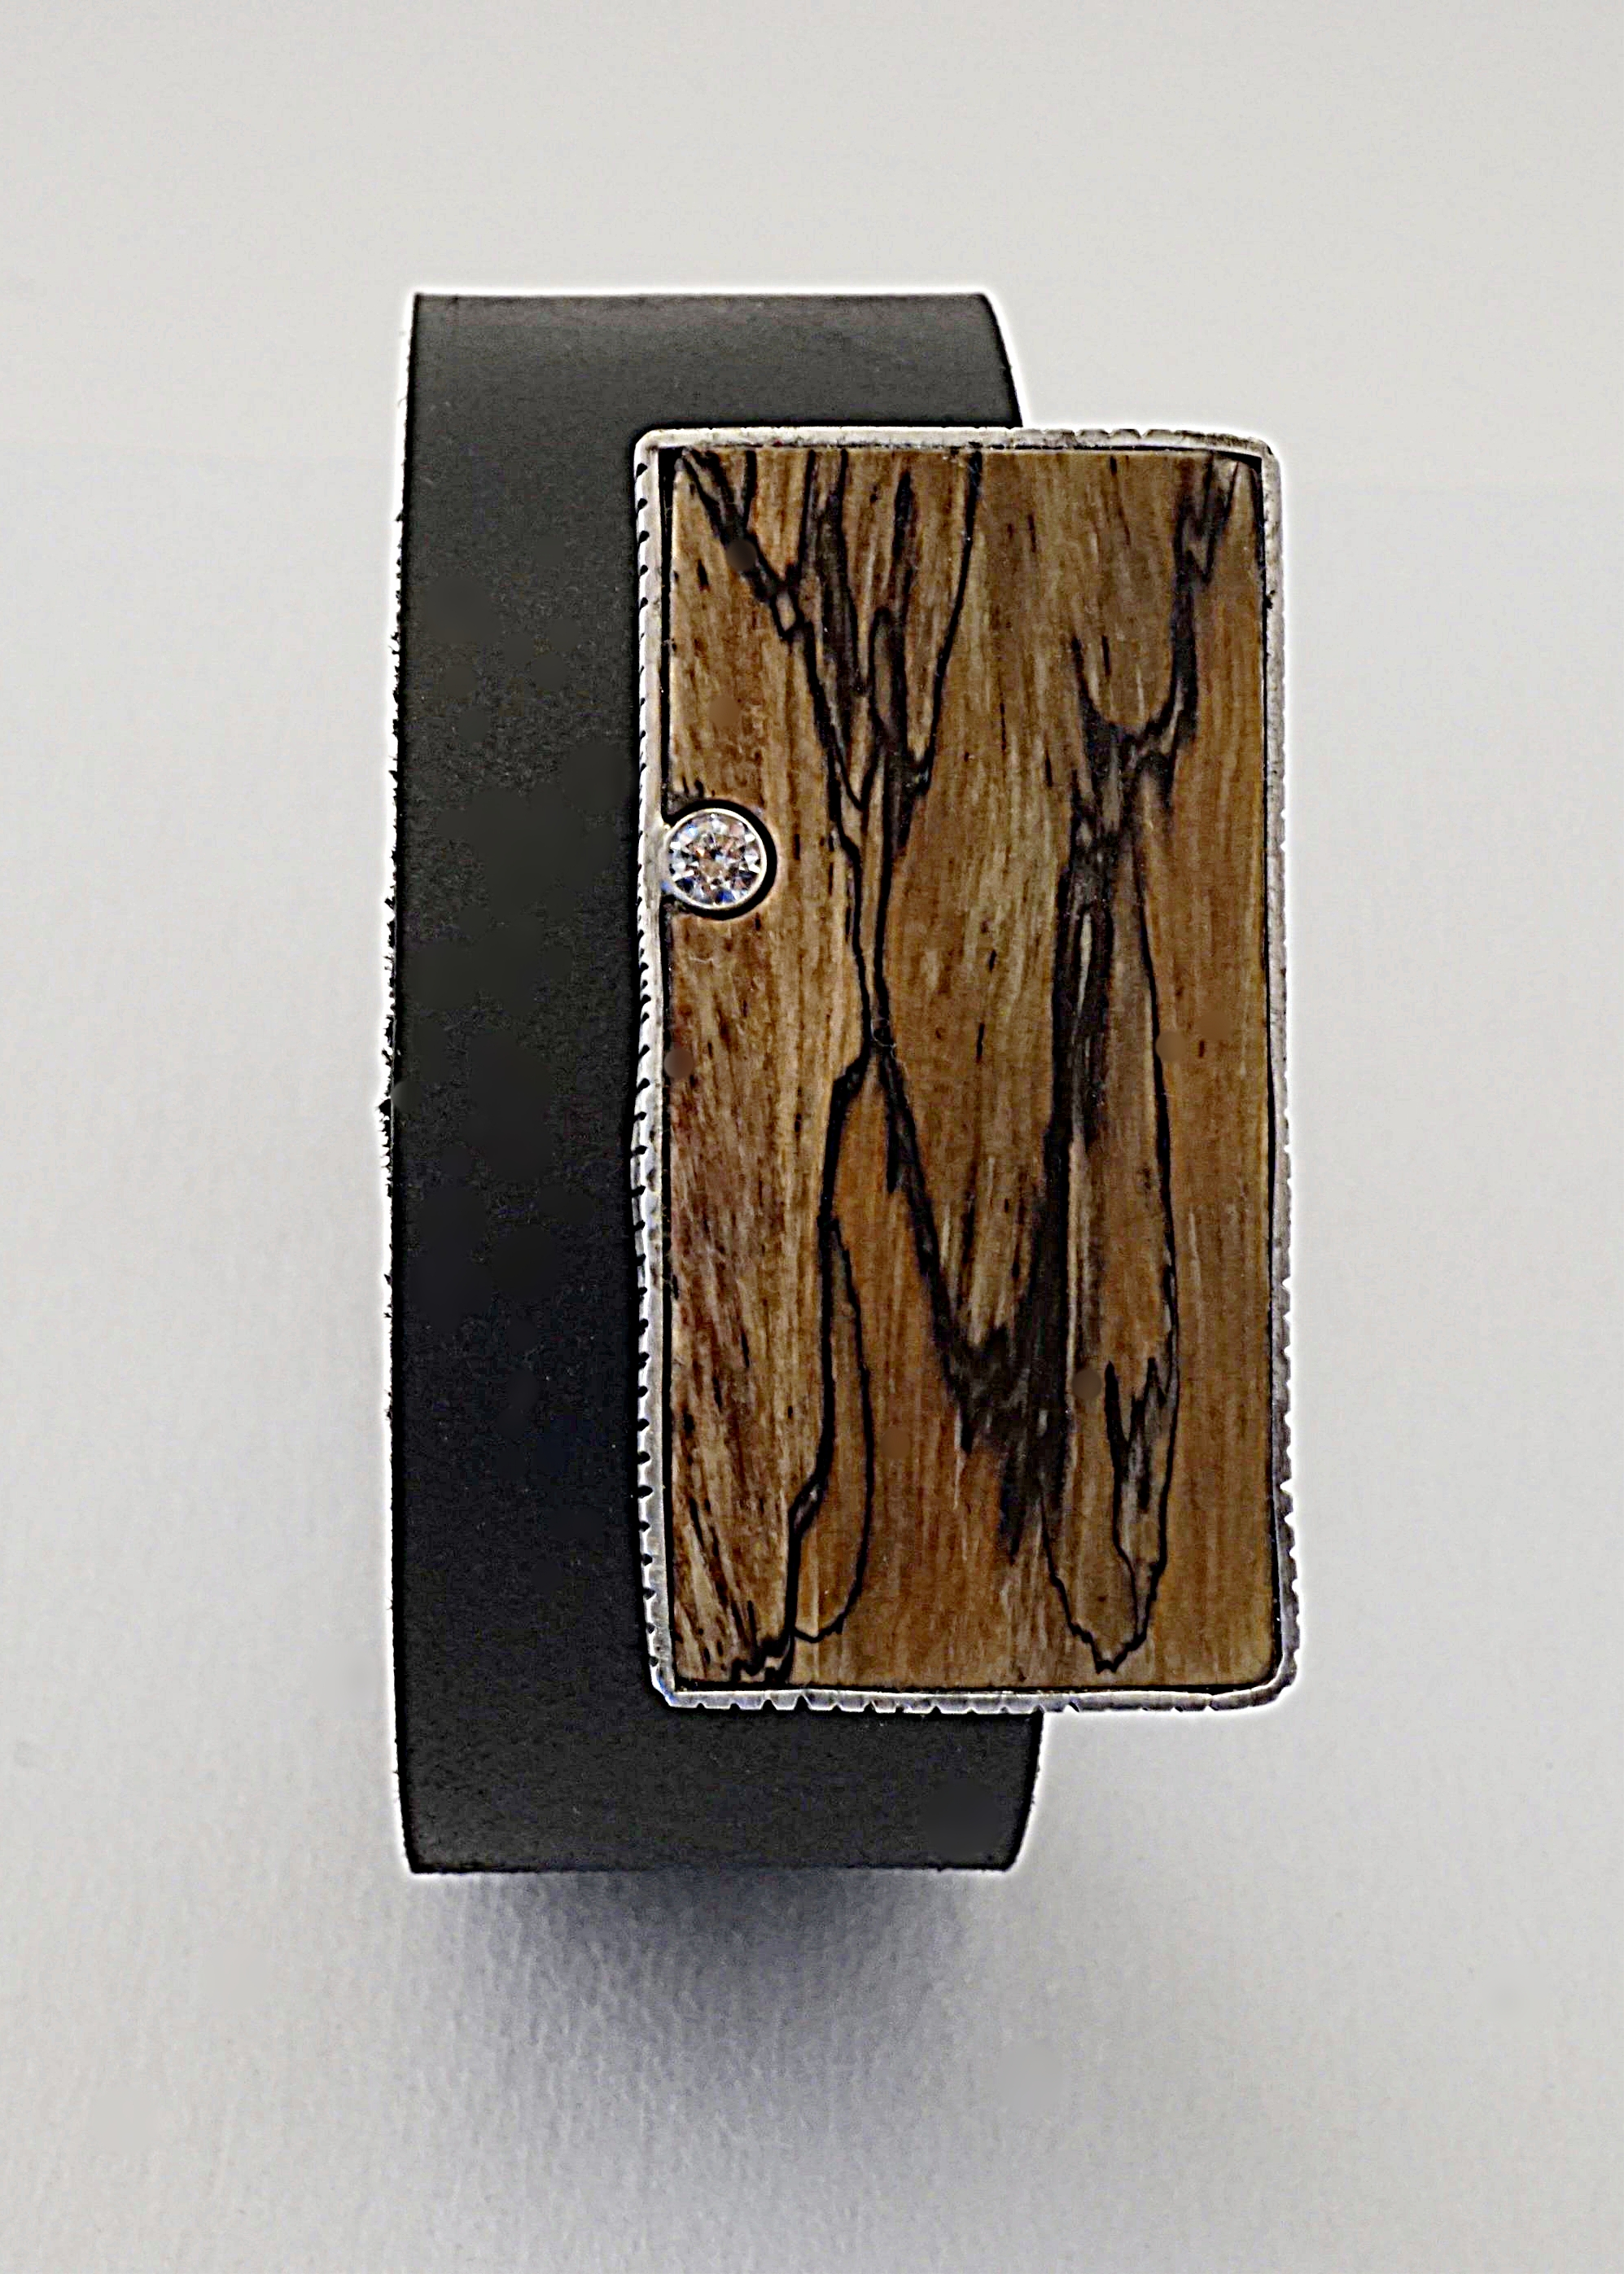 Splated tamarind wood with sterling silver bezel hand textured around wood and sterling silver bezel set with white sapphire on black leather